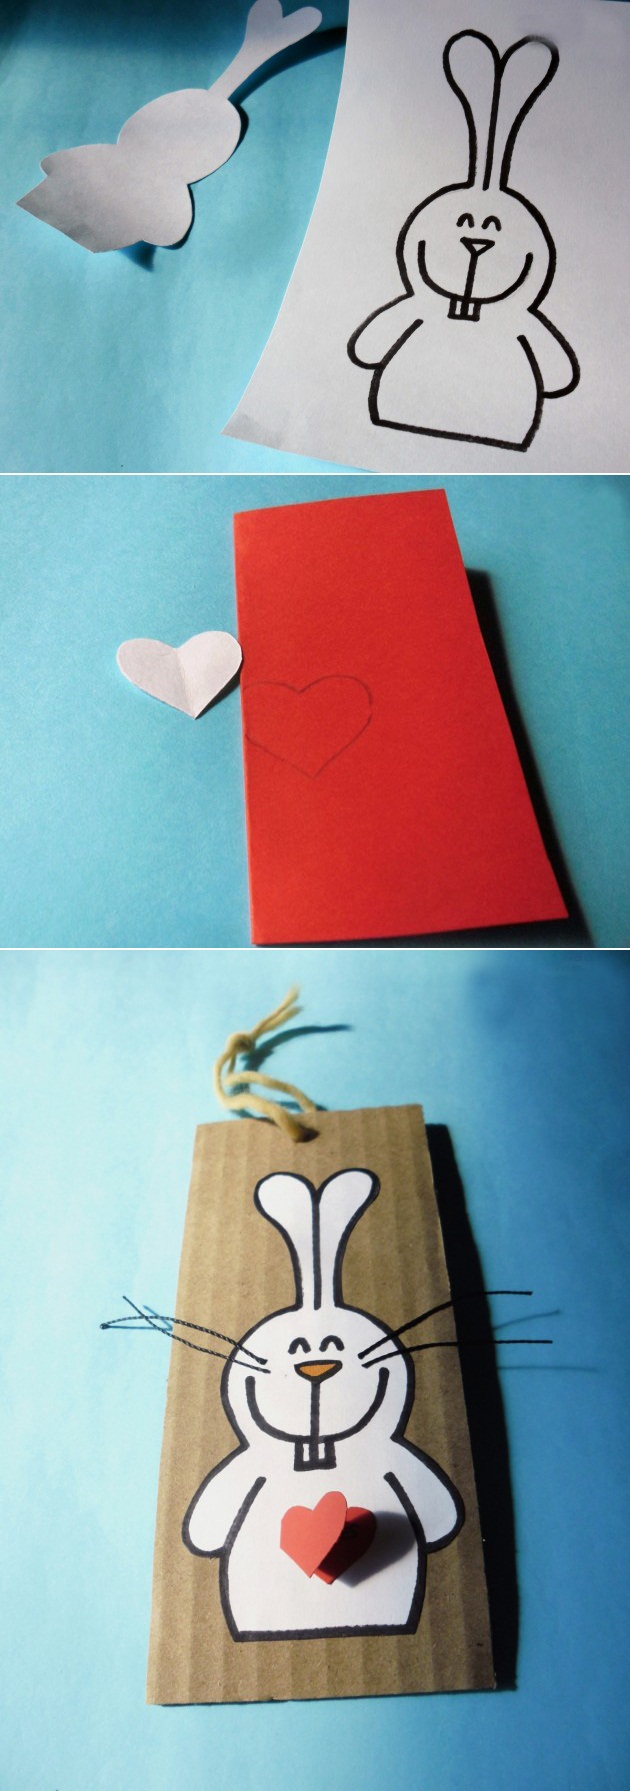 Easter craft ideas for kids to make 4 easy DIY Easter cards – Easter Cards for Kids to Make